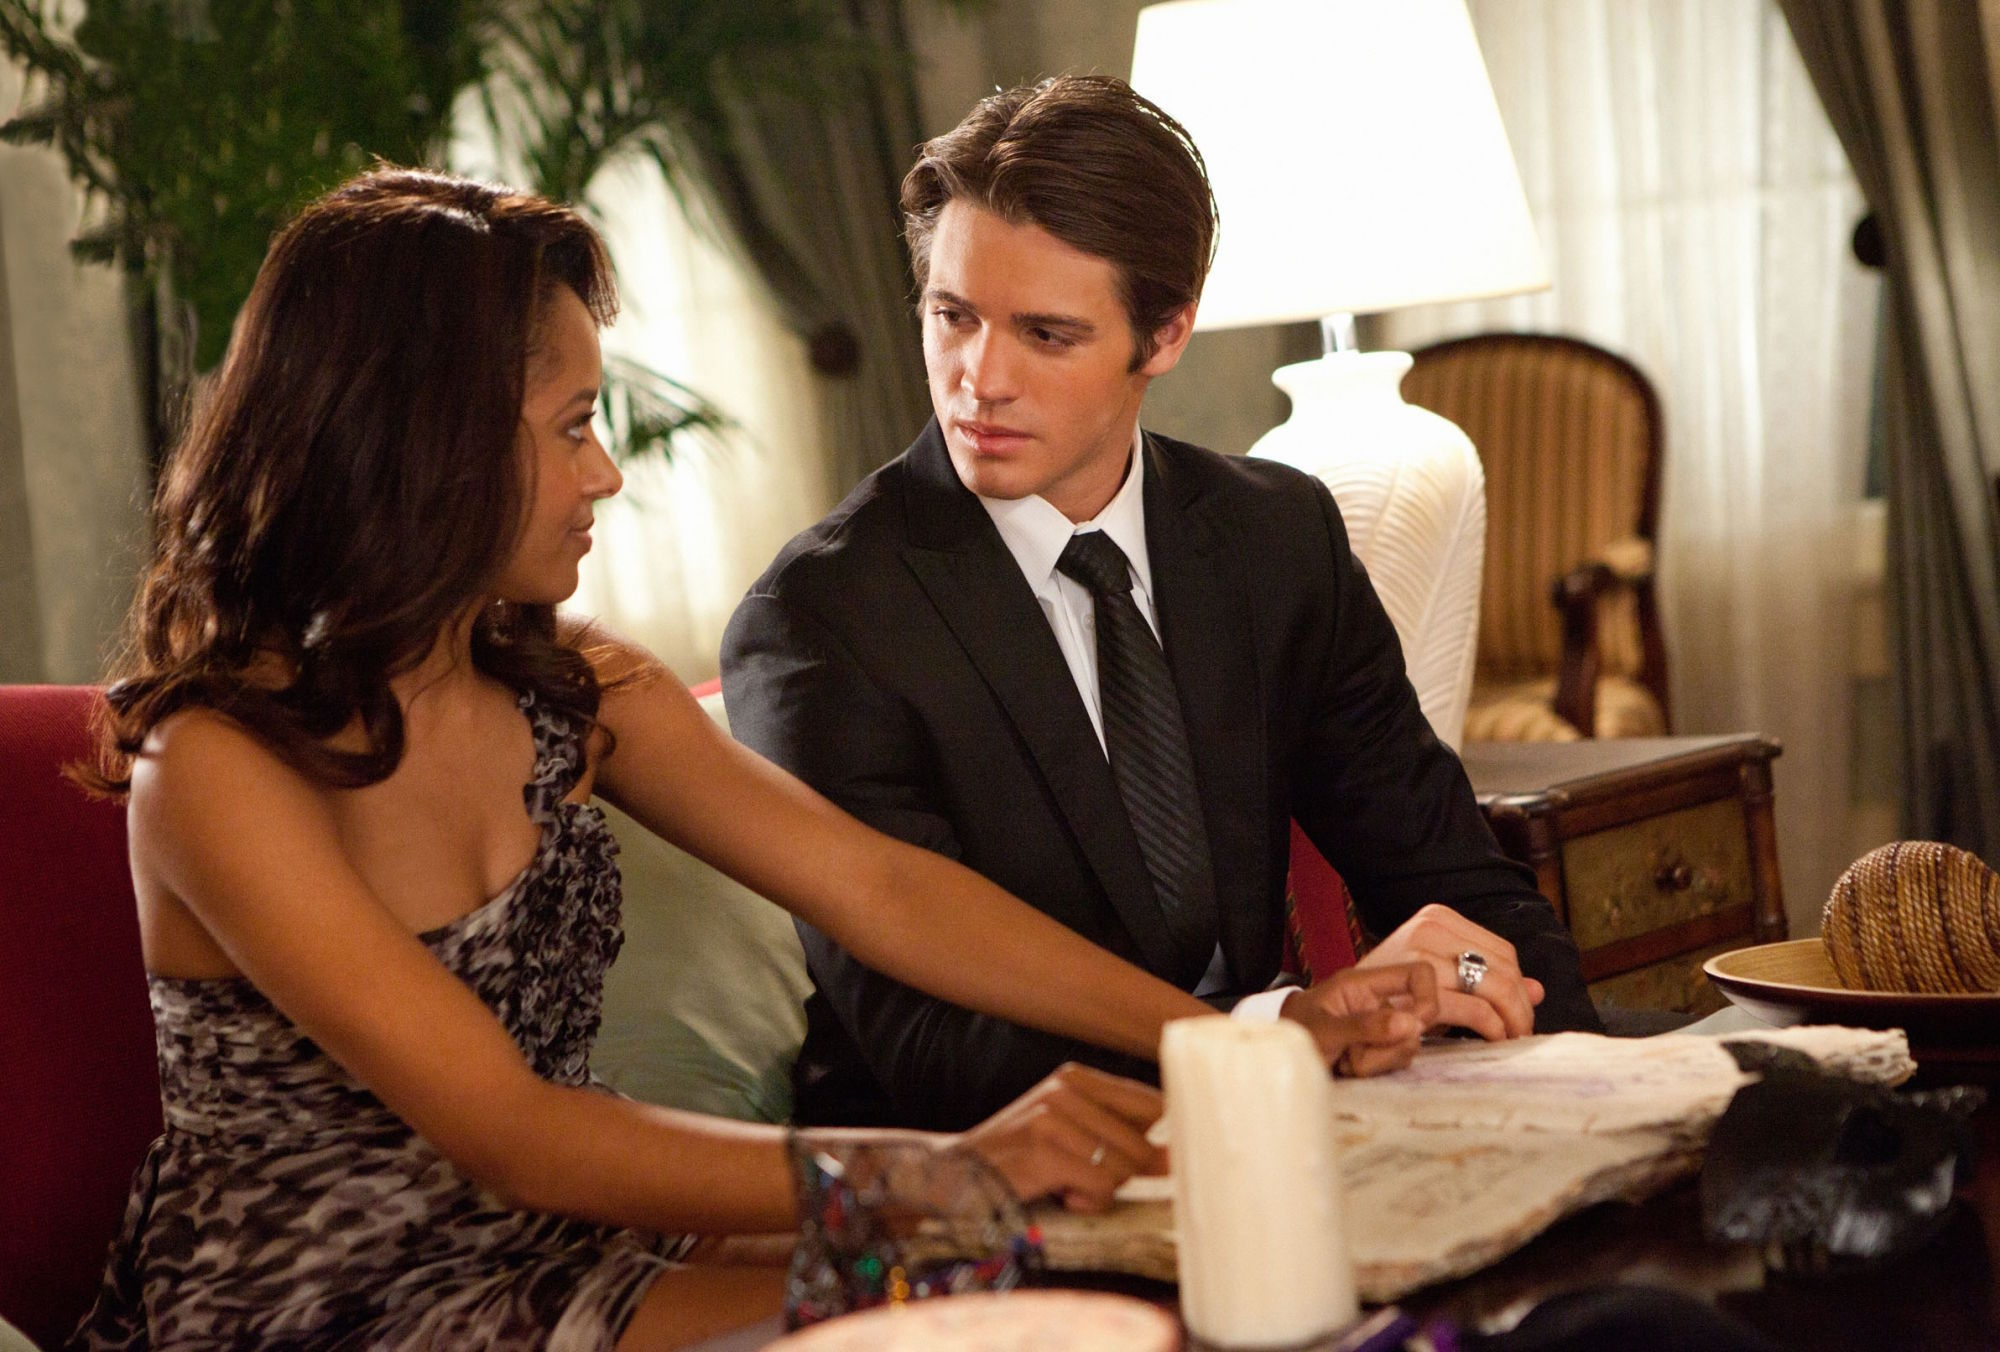 http://images4.fanpop.com/image/photos/16200000/2-07-Masquerade-the-vampire-diaries-16220756-2000-1352.jpg